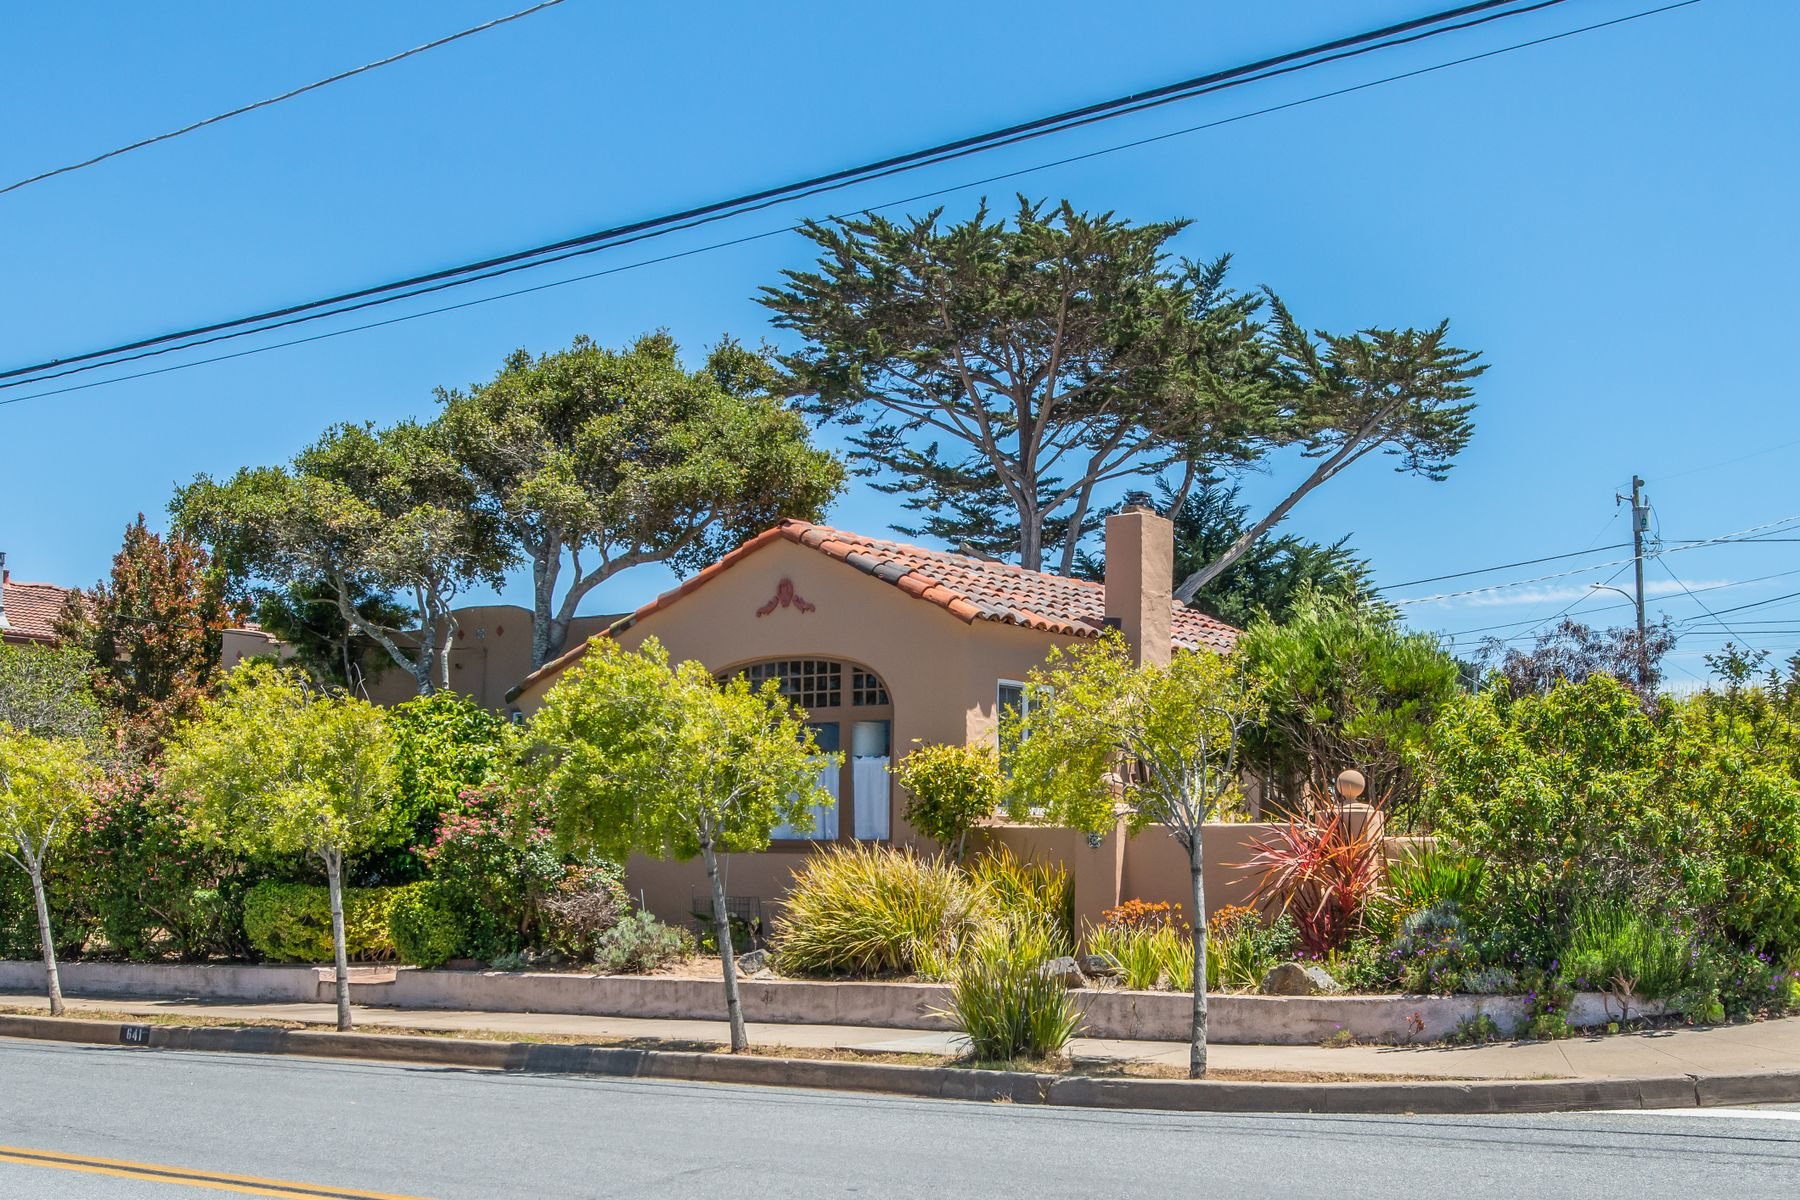 Single Family Homes for Sale at Charming Mediterranean 641 Eardley Avenue Pacific Grove, California 93950 United States